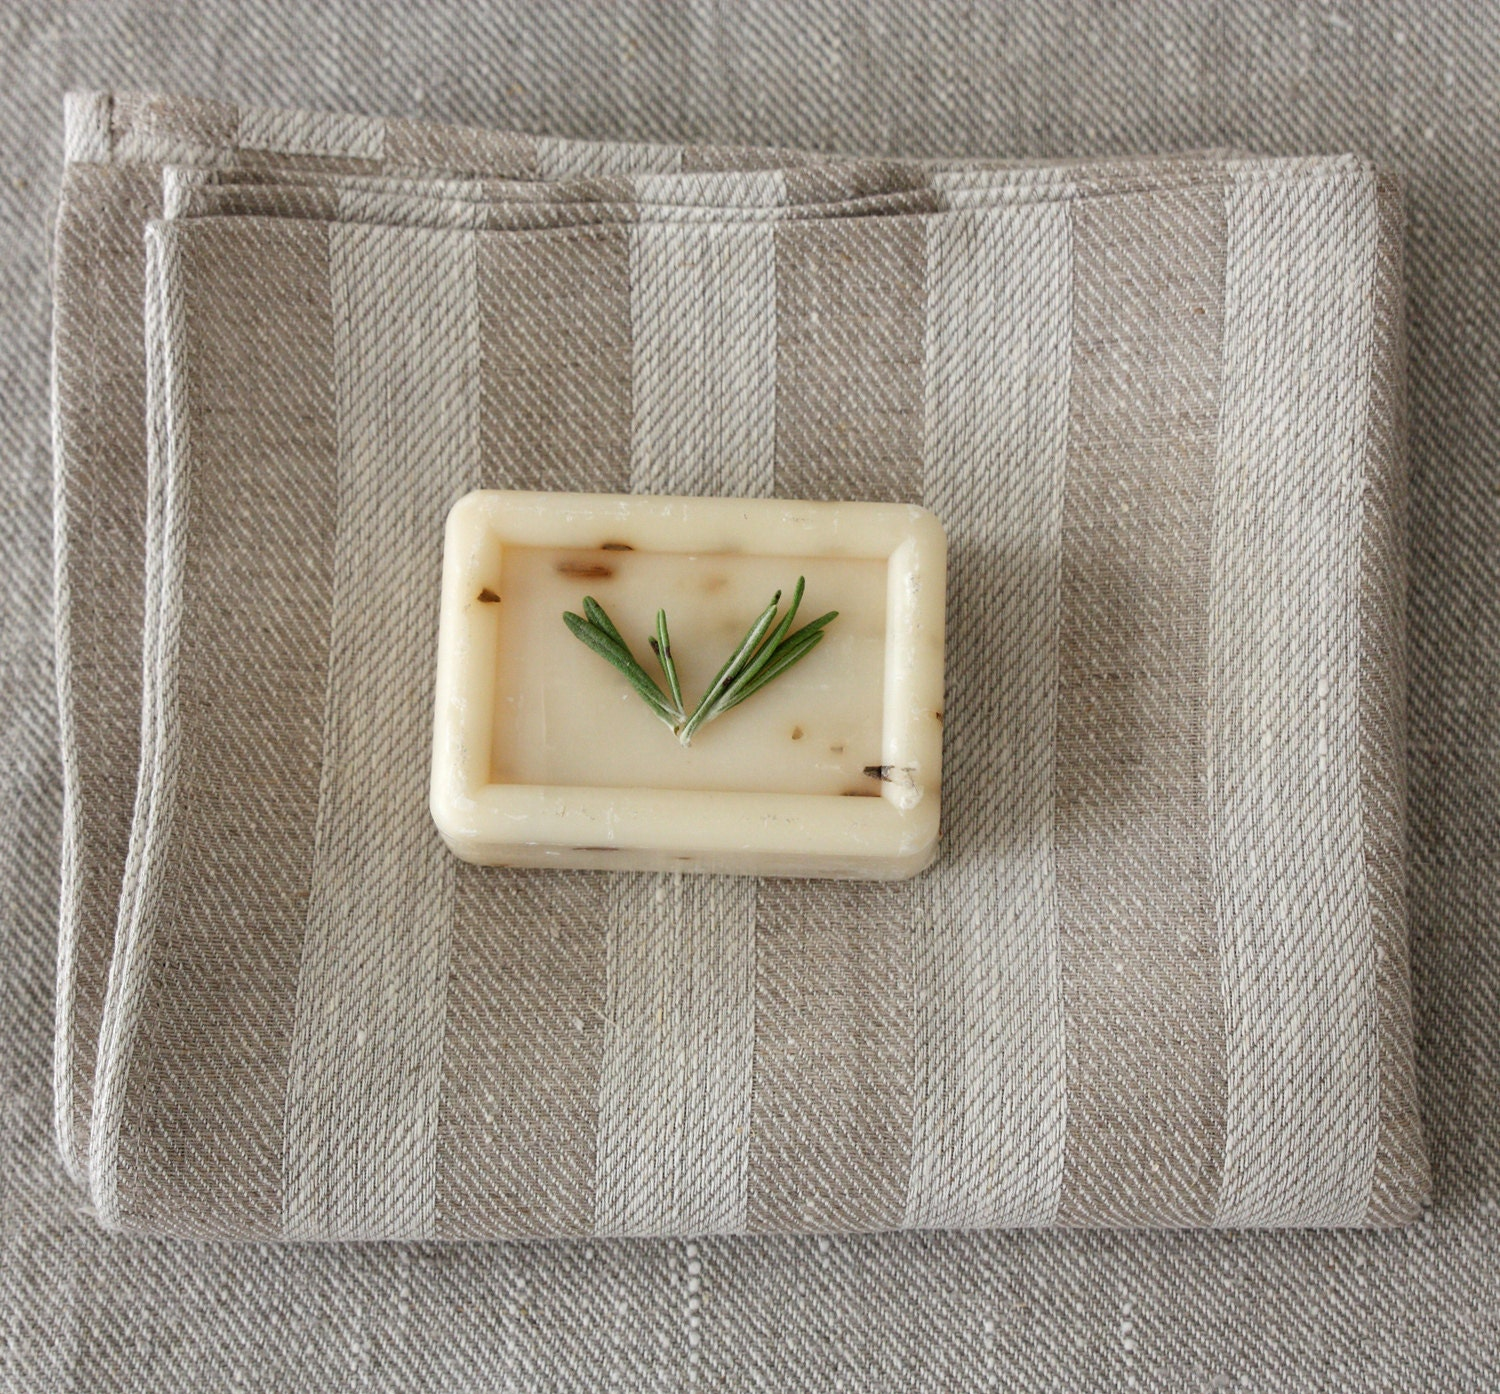 Grey And Beige Bathroom: Linen Bath Towel 28x47 Natural Grey Beige Striped By